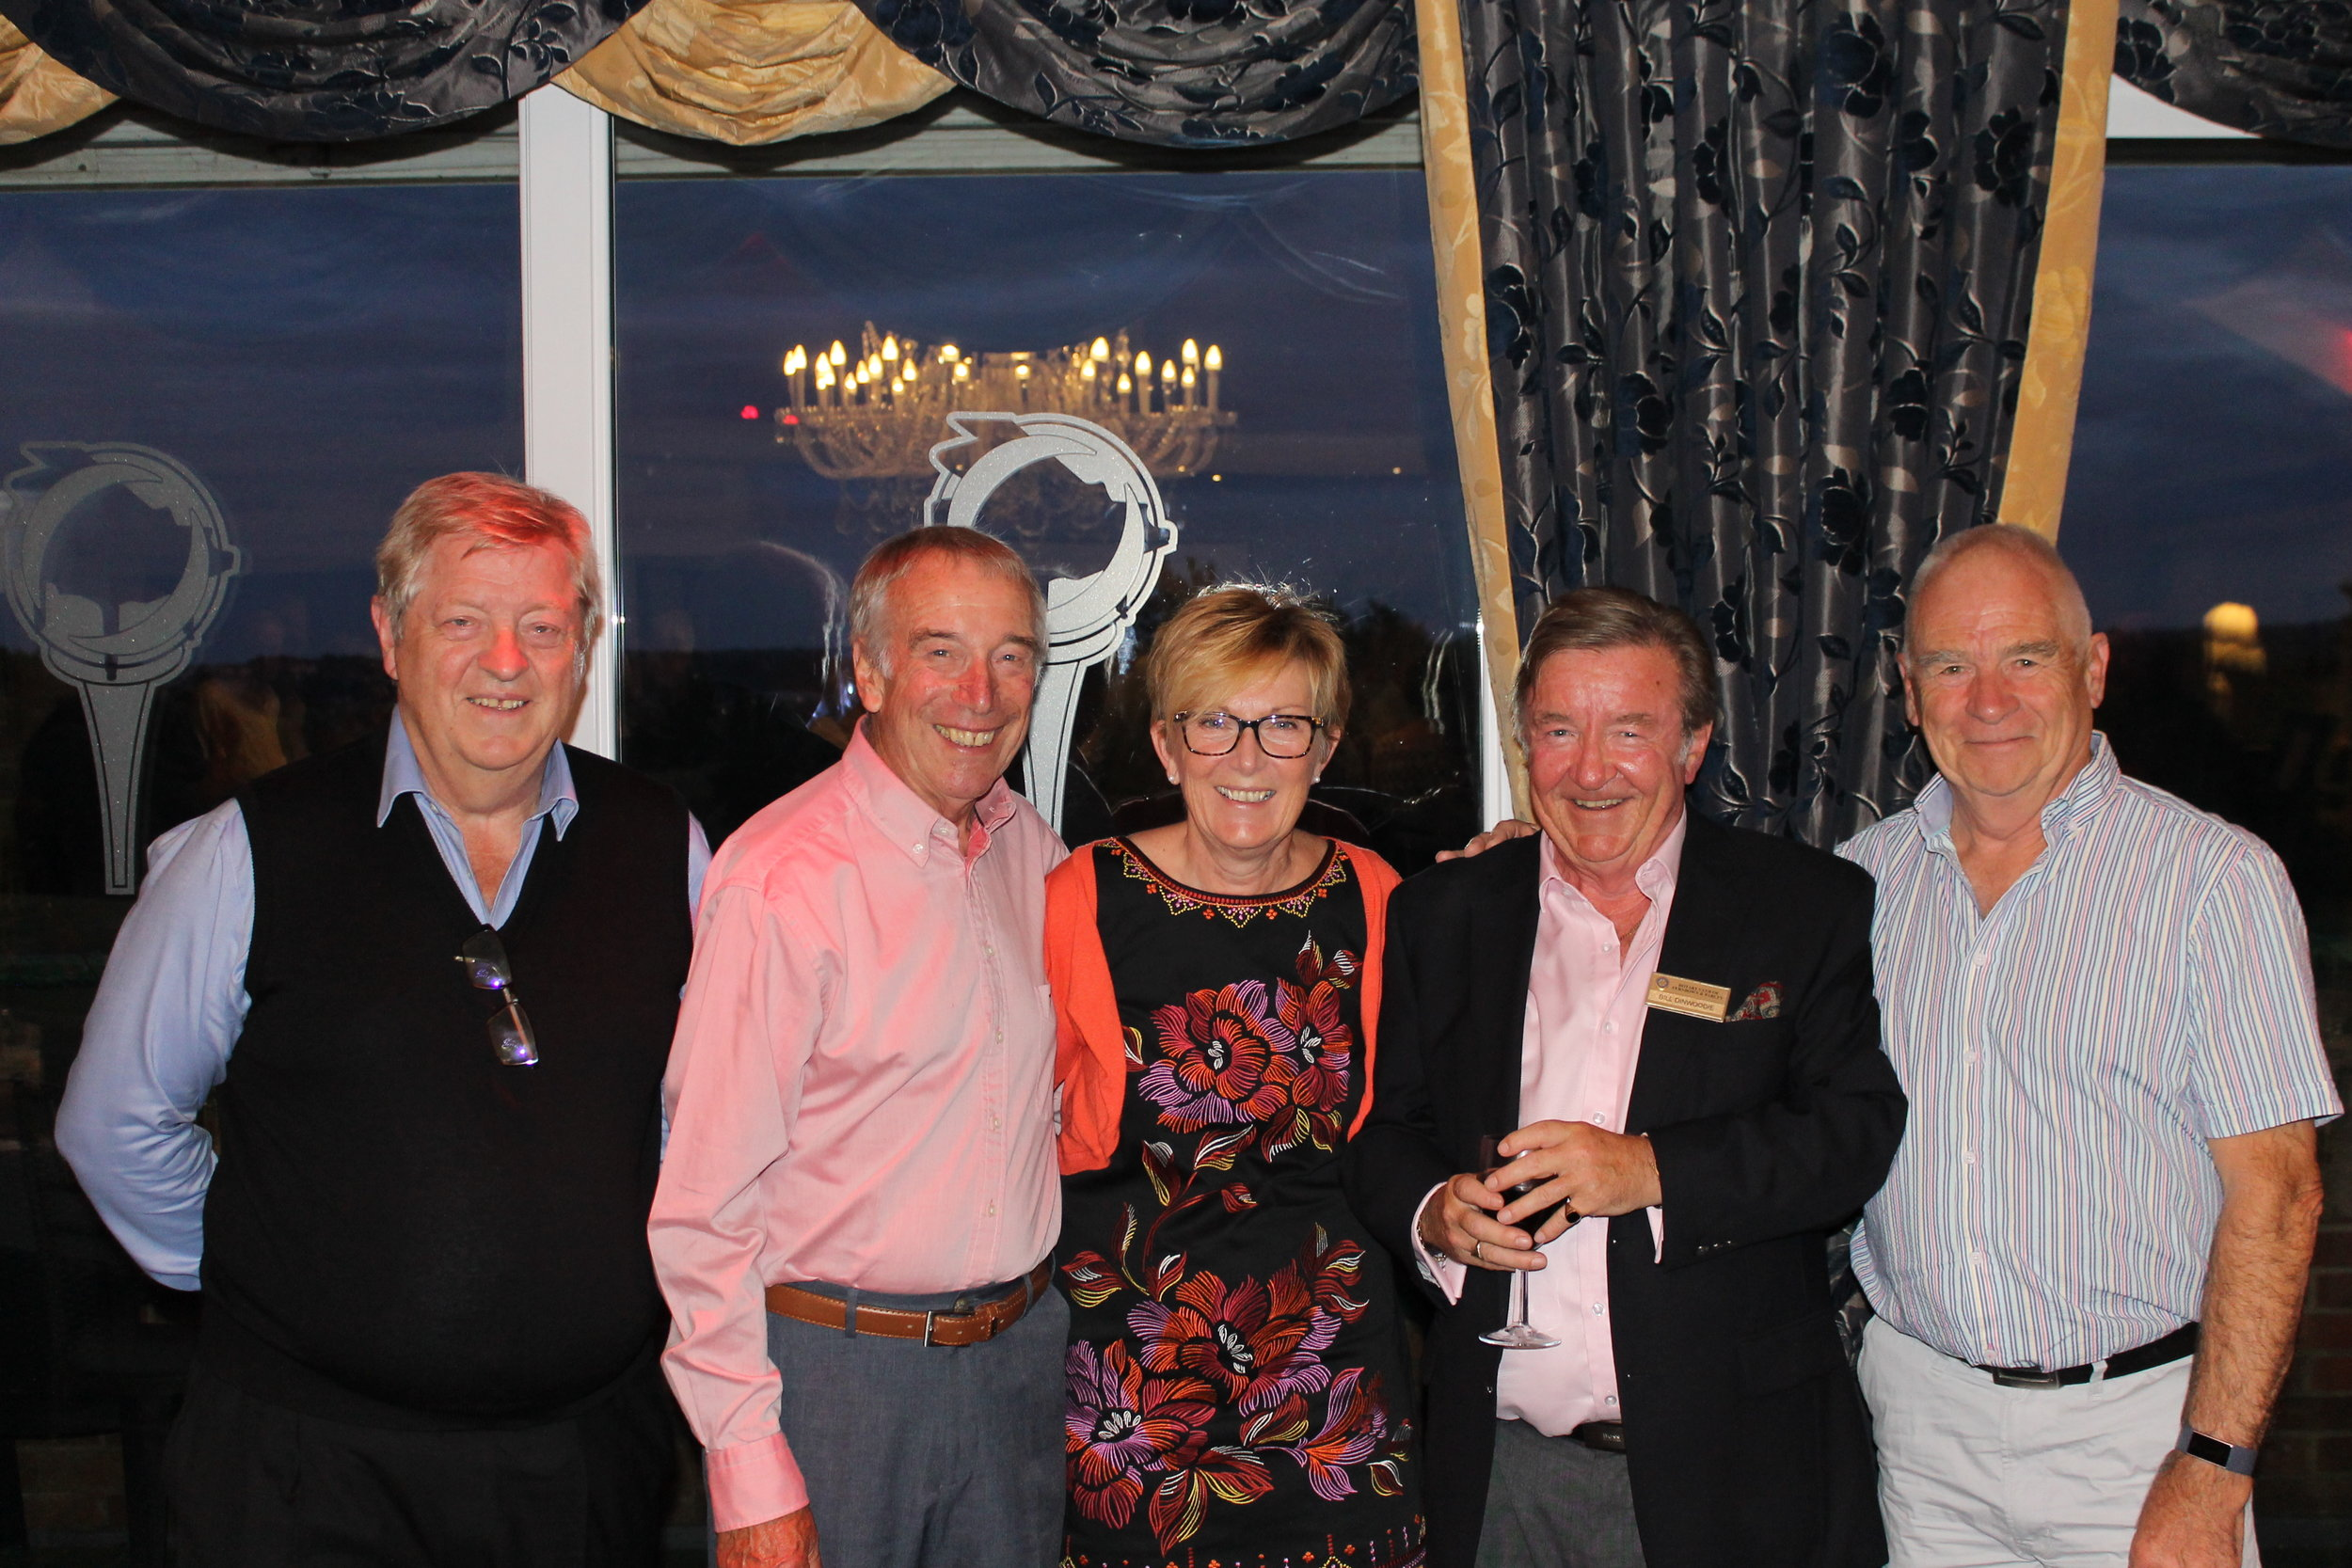 LtoR - Outgoing President of Ferndown Rotary Club, Charlie Pellatt, Ferndown Rotarian, Keith Adams, Linda Thornton, Ferndown Rotarian, Bill Dinwoodie, & Pete Thornton - at the recent cheque presentation